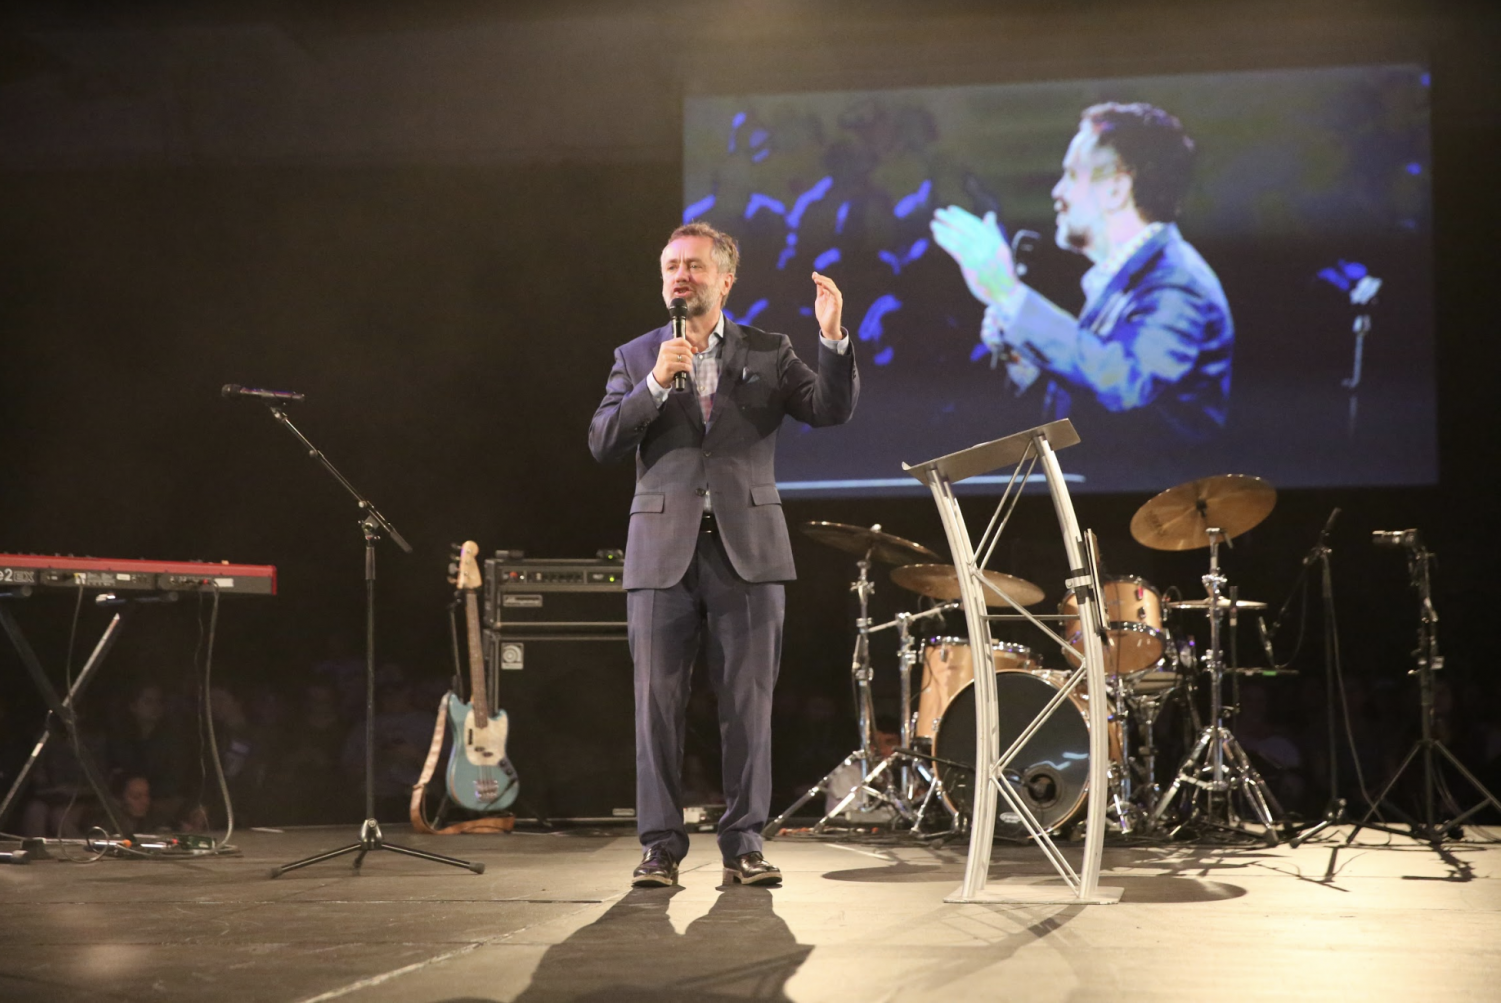 Dr+Barry+Correy+opens+Missions+Conference+2019.